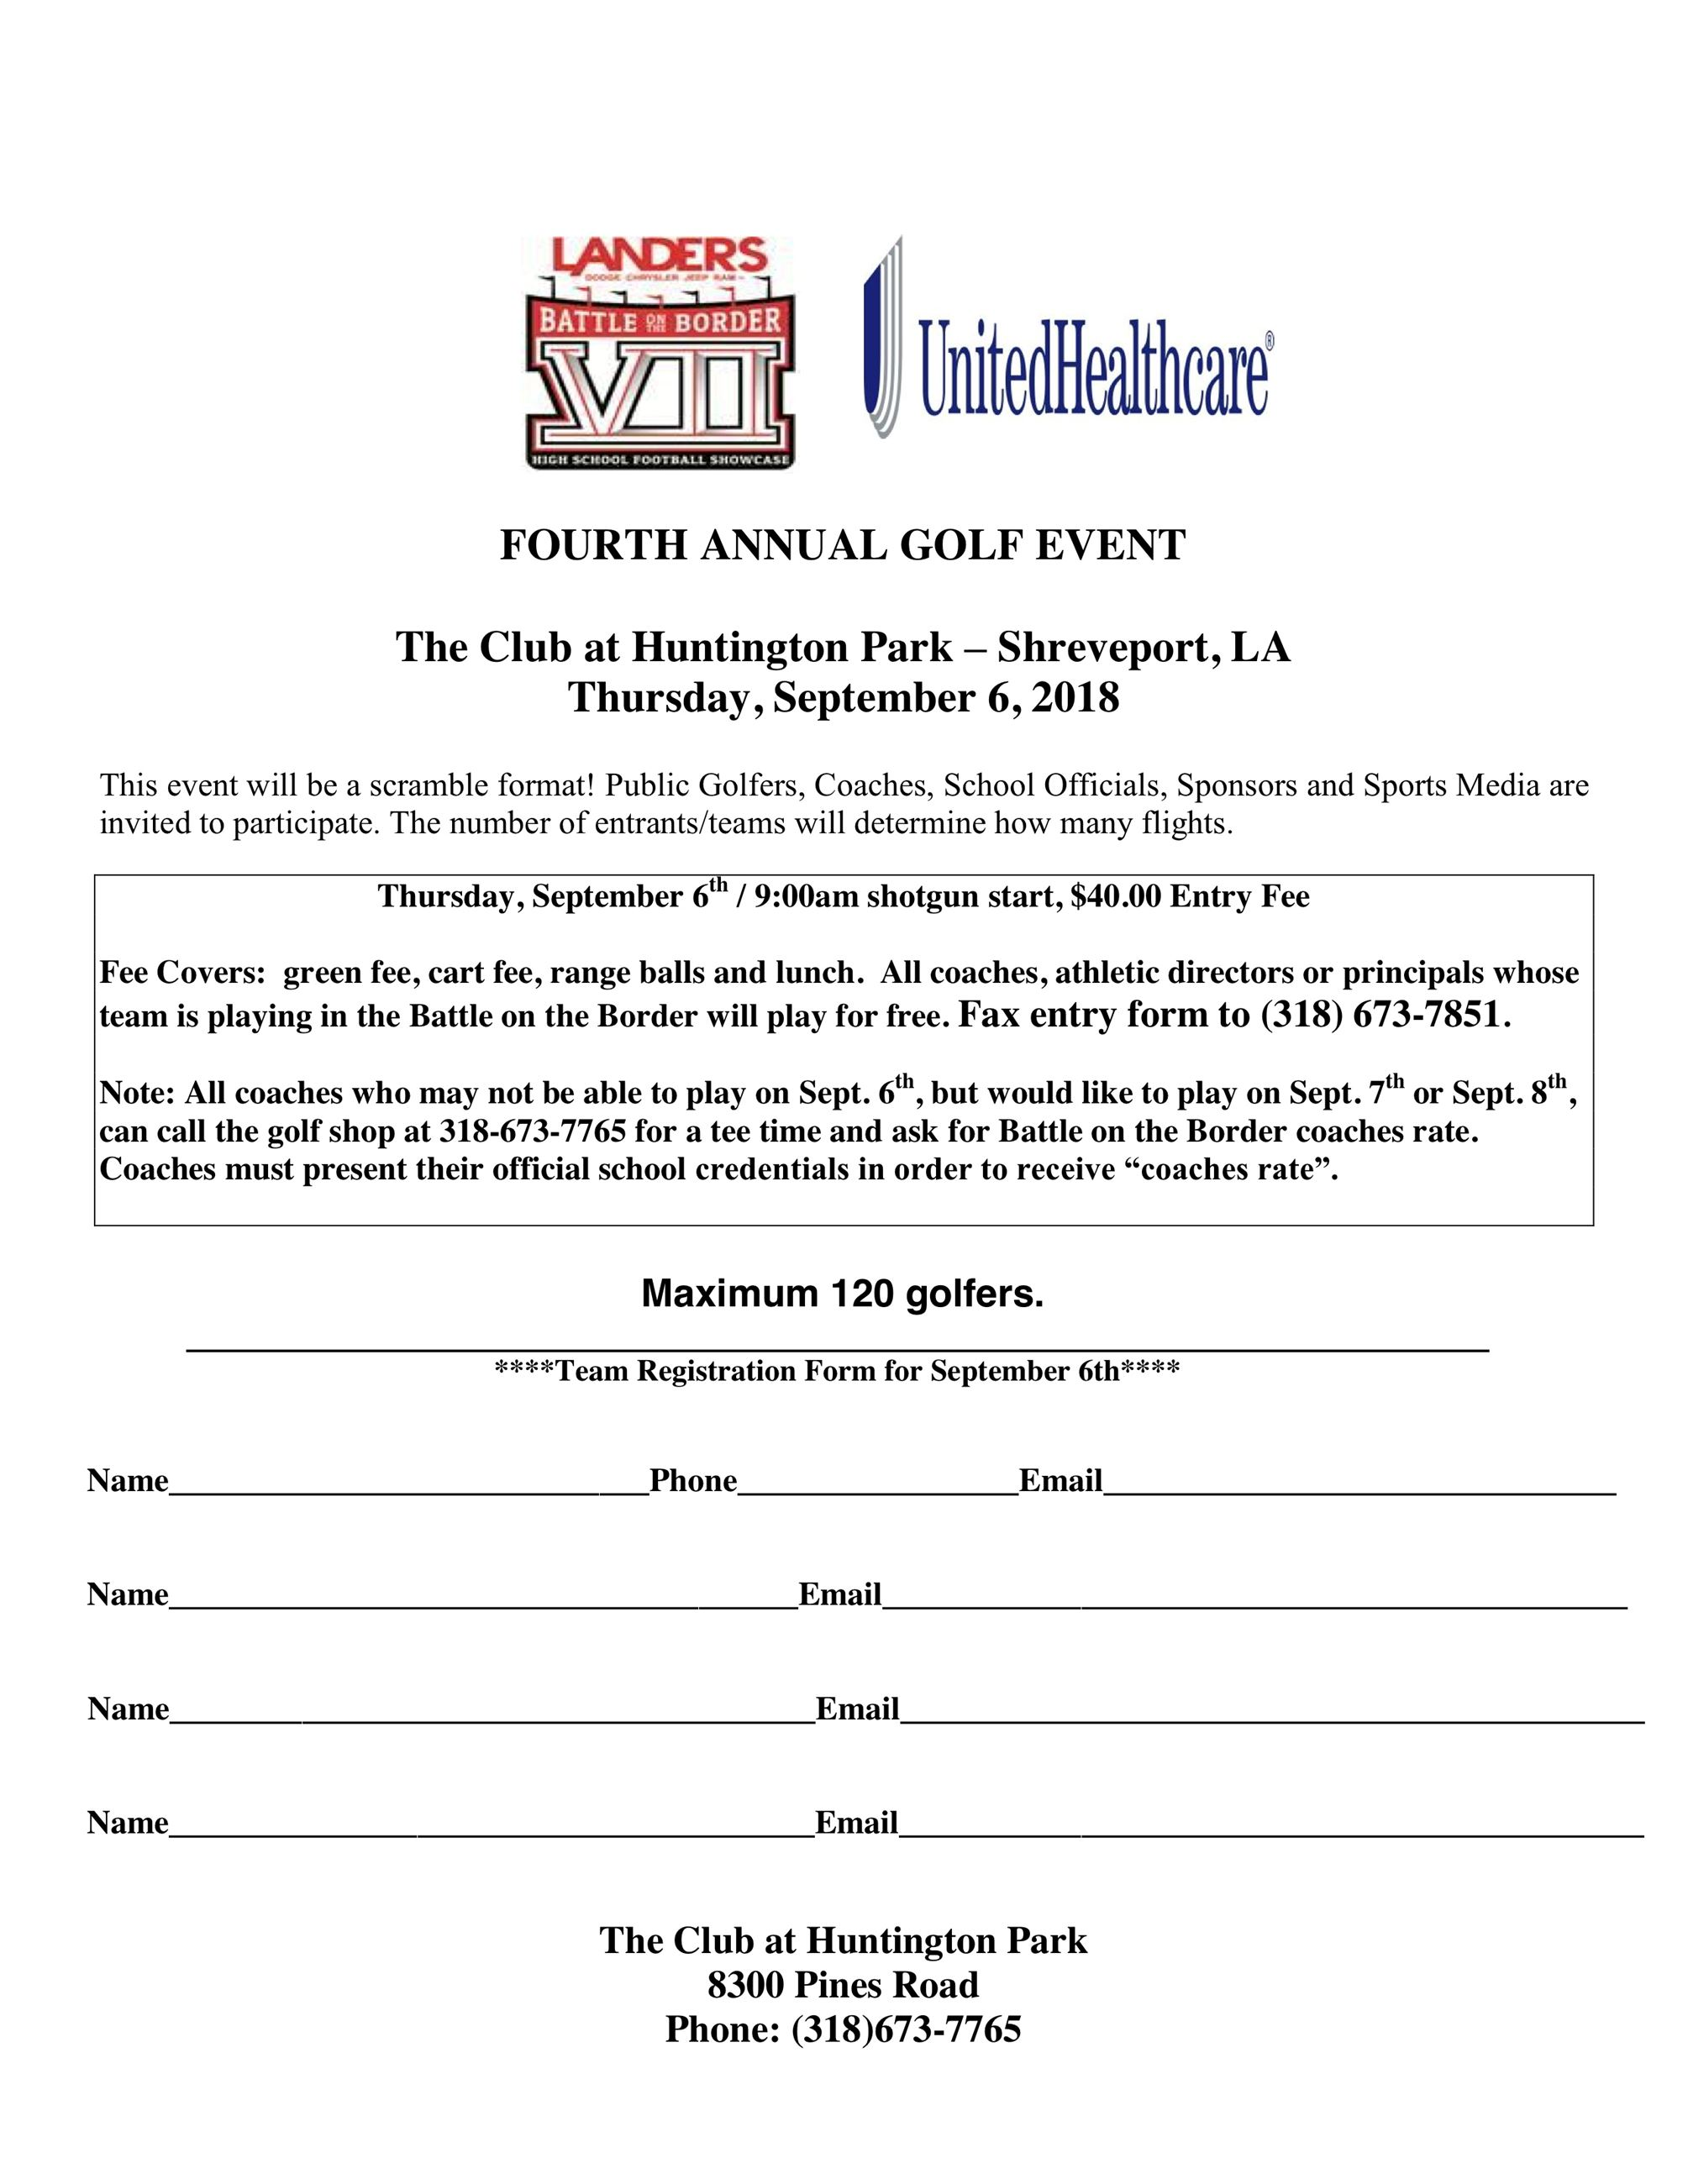 Battle on the Border golf registration form-2018